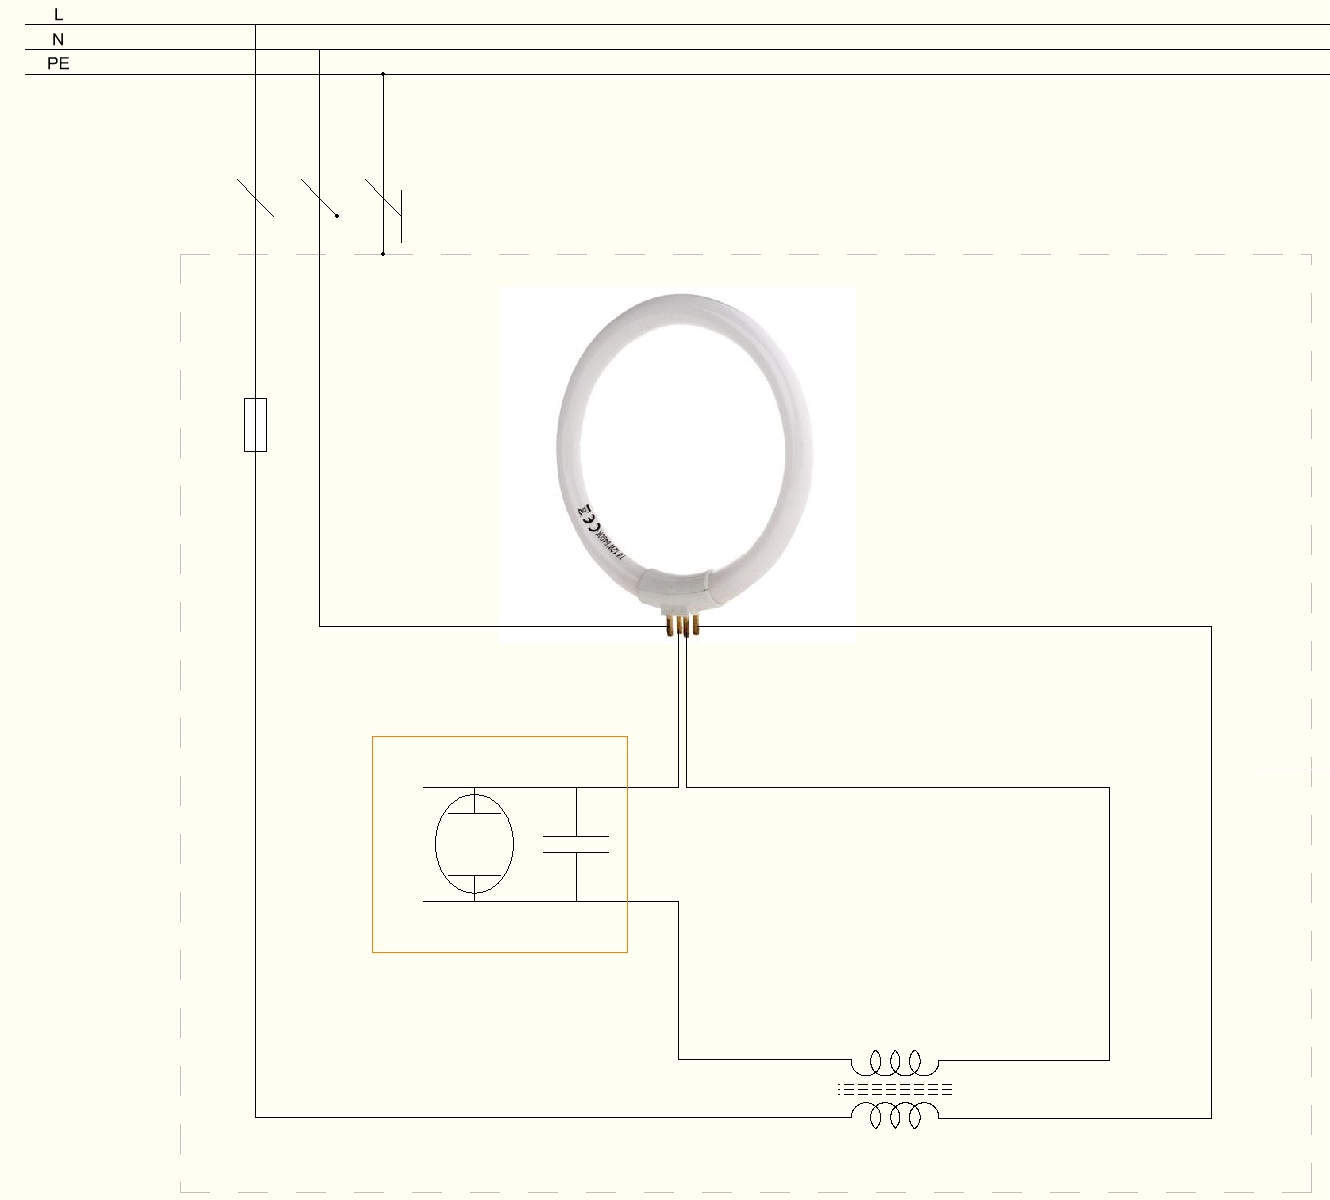 Fluorescent Circular Wiring Diagrams Diy Enthusiasts 4 Bulb Ballast Diagram File How To Wire Lamp Wikimedia Commons Rh Org For T8 Lights 480